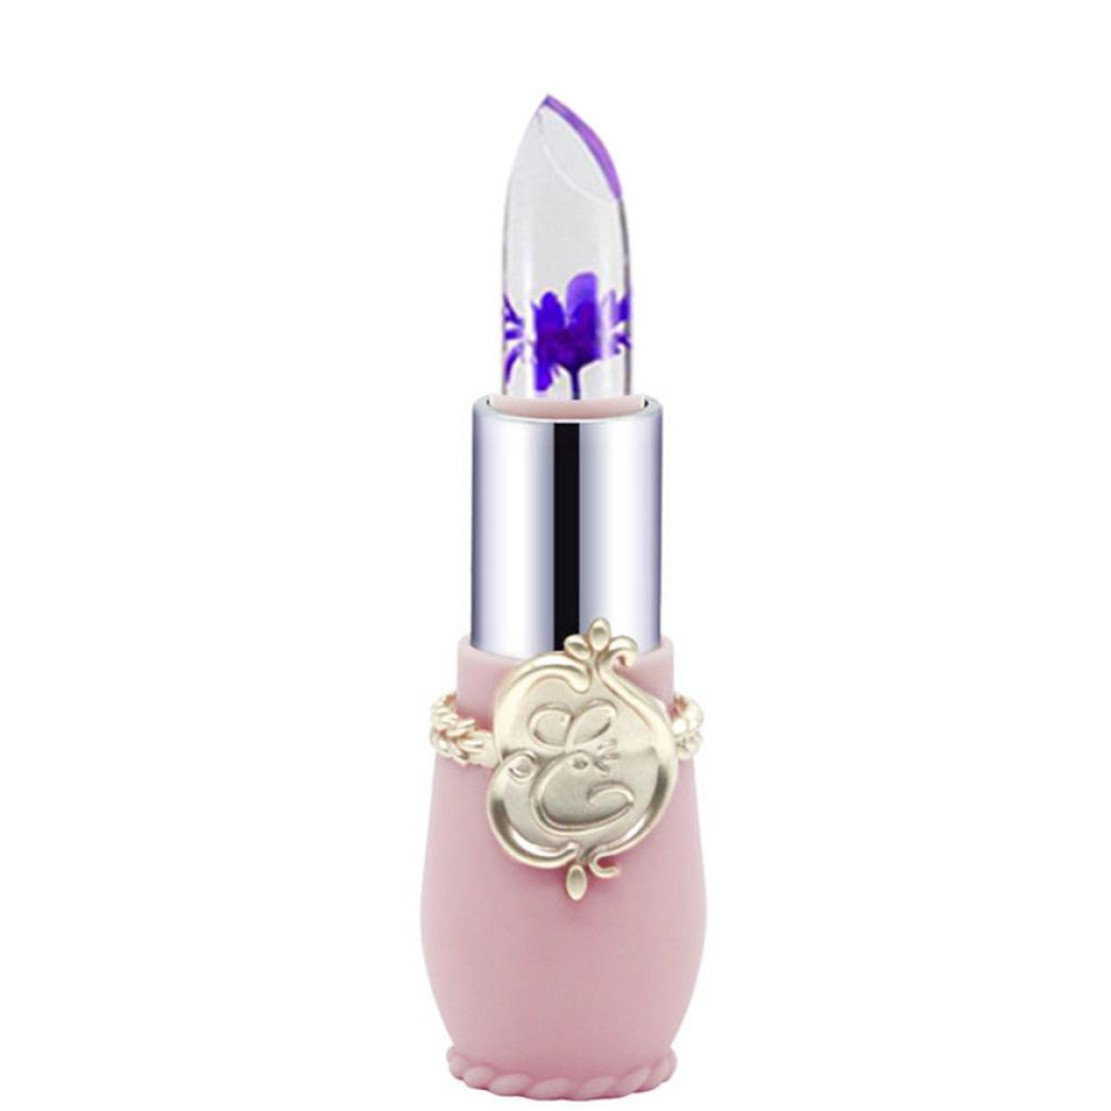 Bringbring Womens Bright Flower Crystal Jelly Lipstick Magic Temperature Change Color Lip Makeup